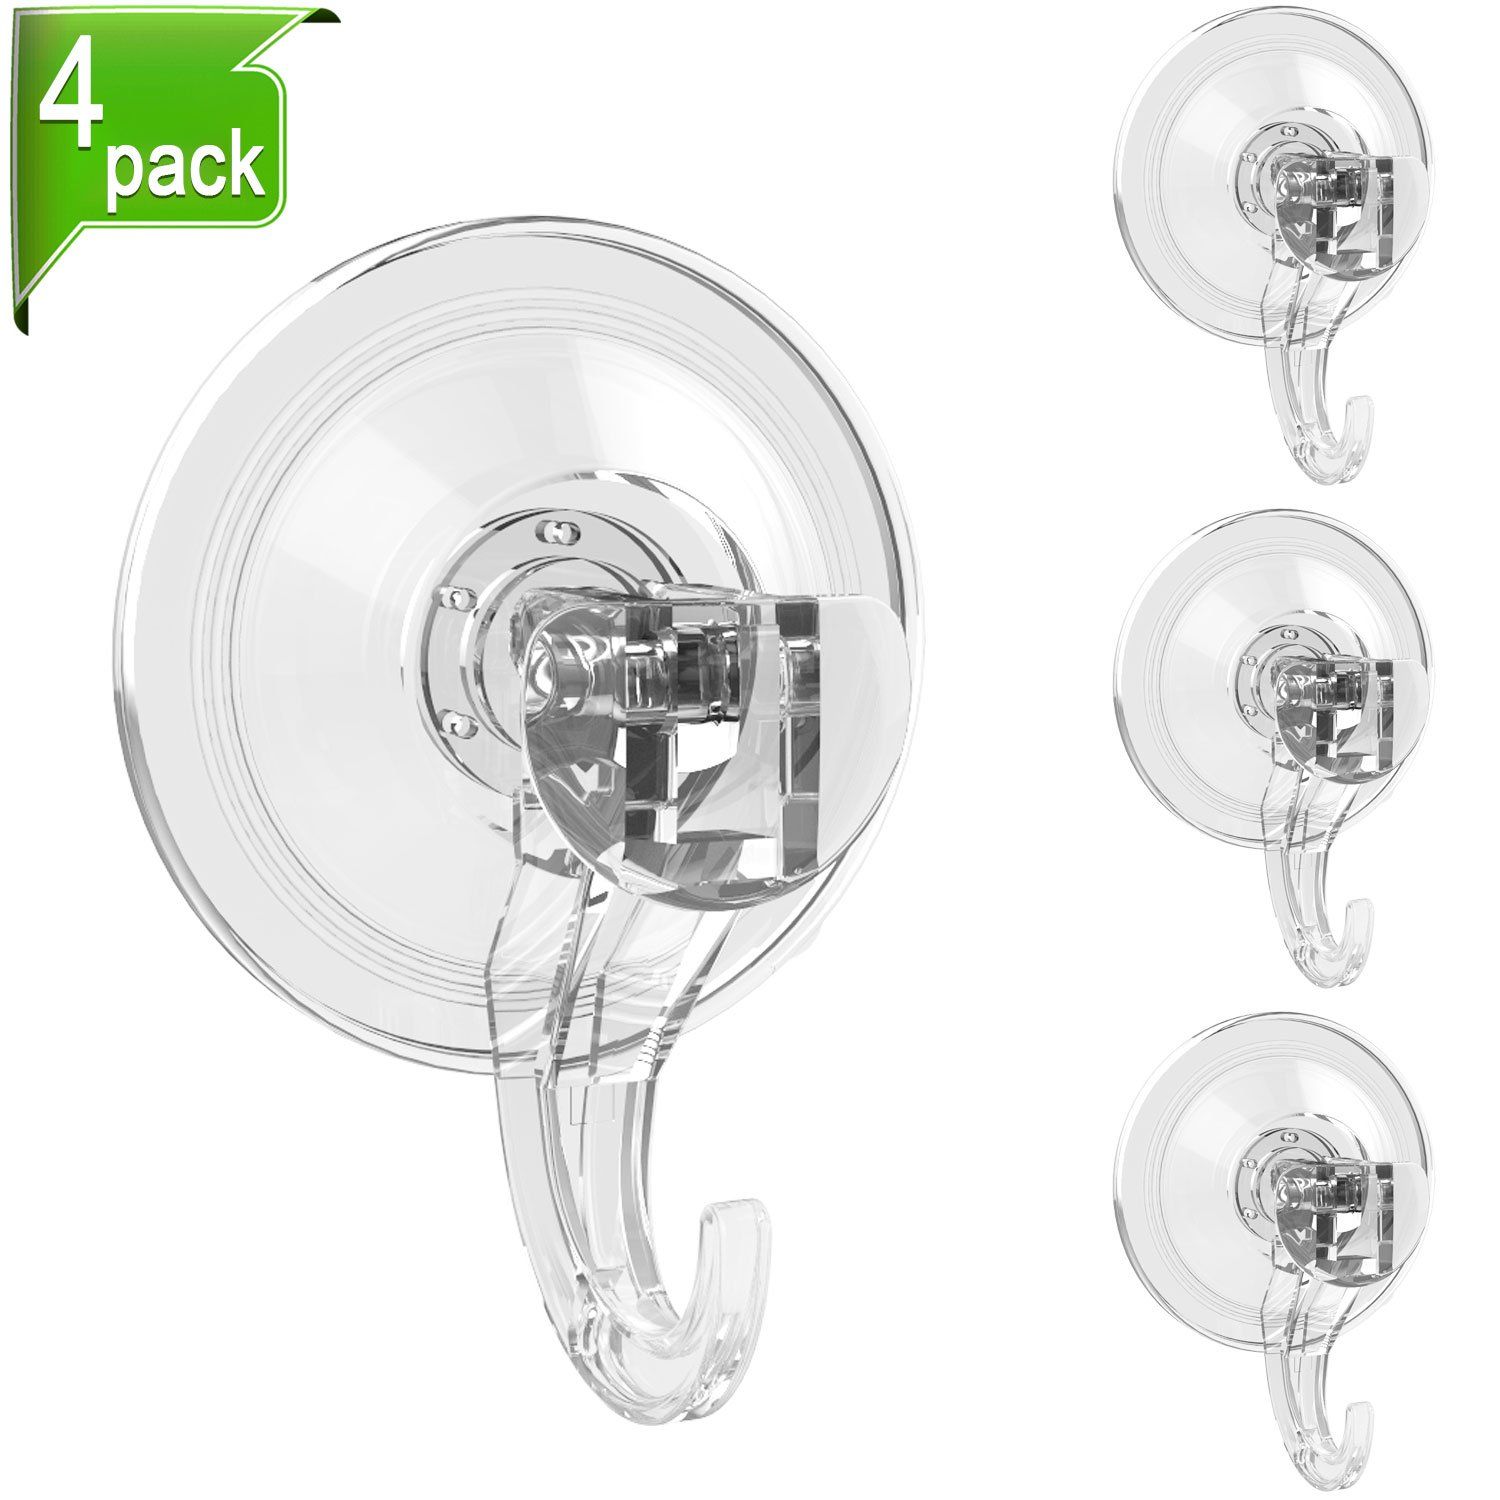 ilikable Suction Cup Hooks 4 Pack Heavy Duty Vacuum Suction Bathroom Wall Hooks Strong Towel Cloth Utensils Hanging Holder Hooks for Shower Bathroom Kitchen - Clear by ilikable